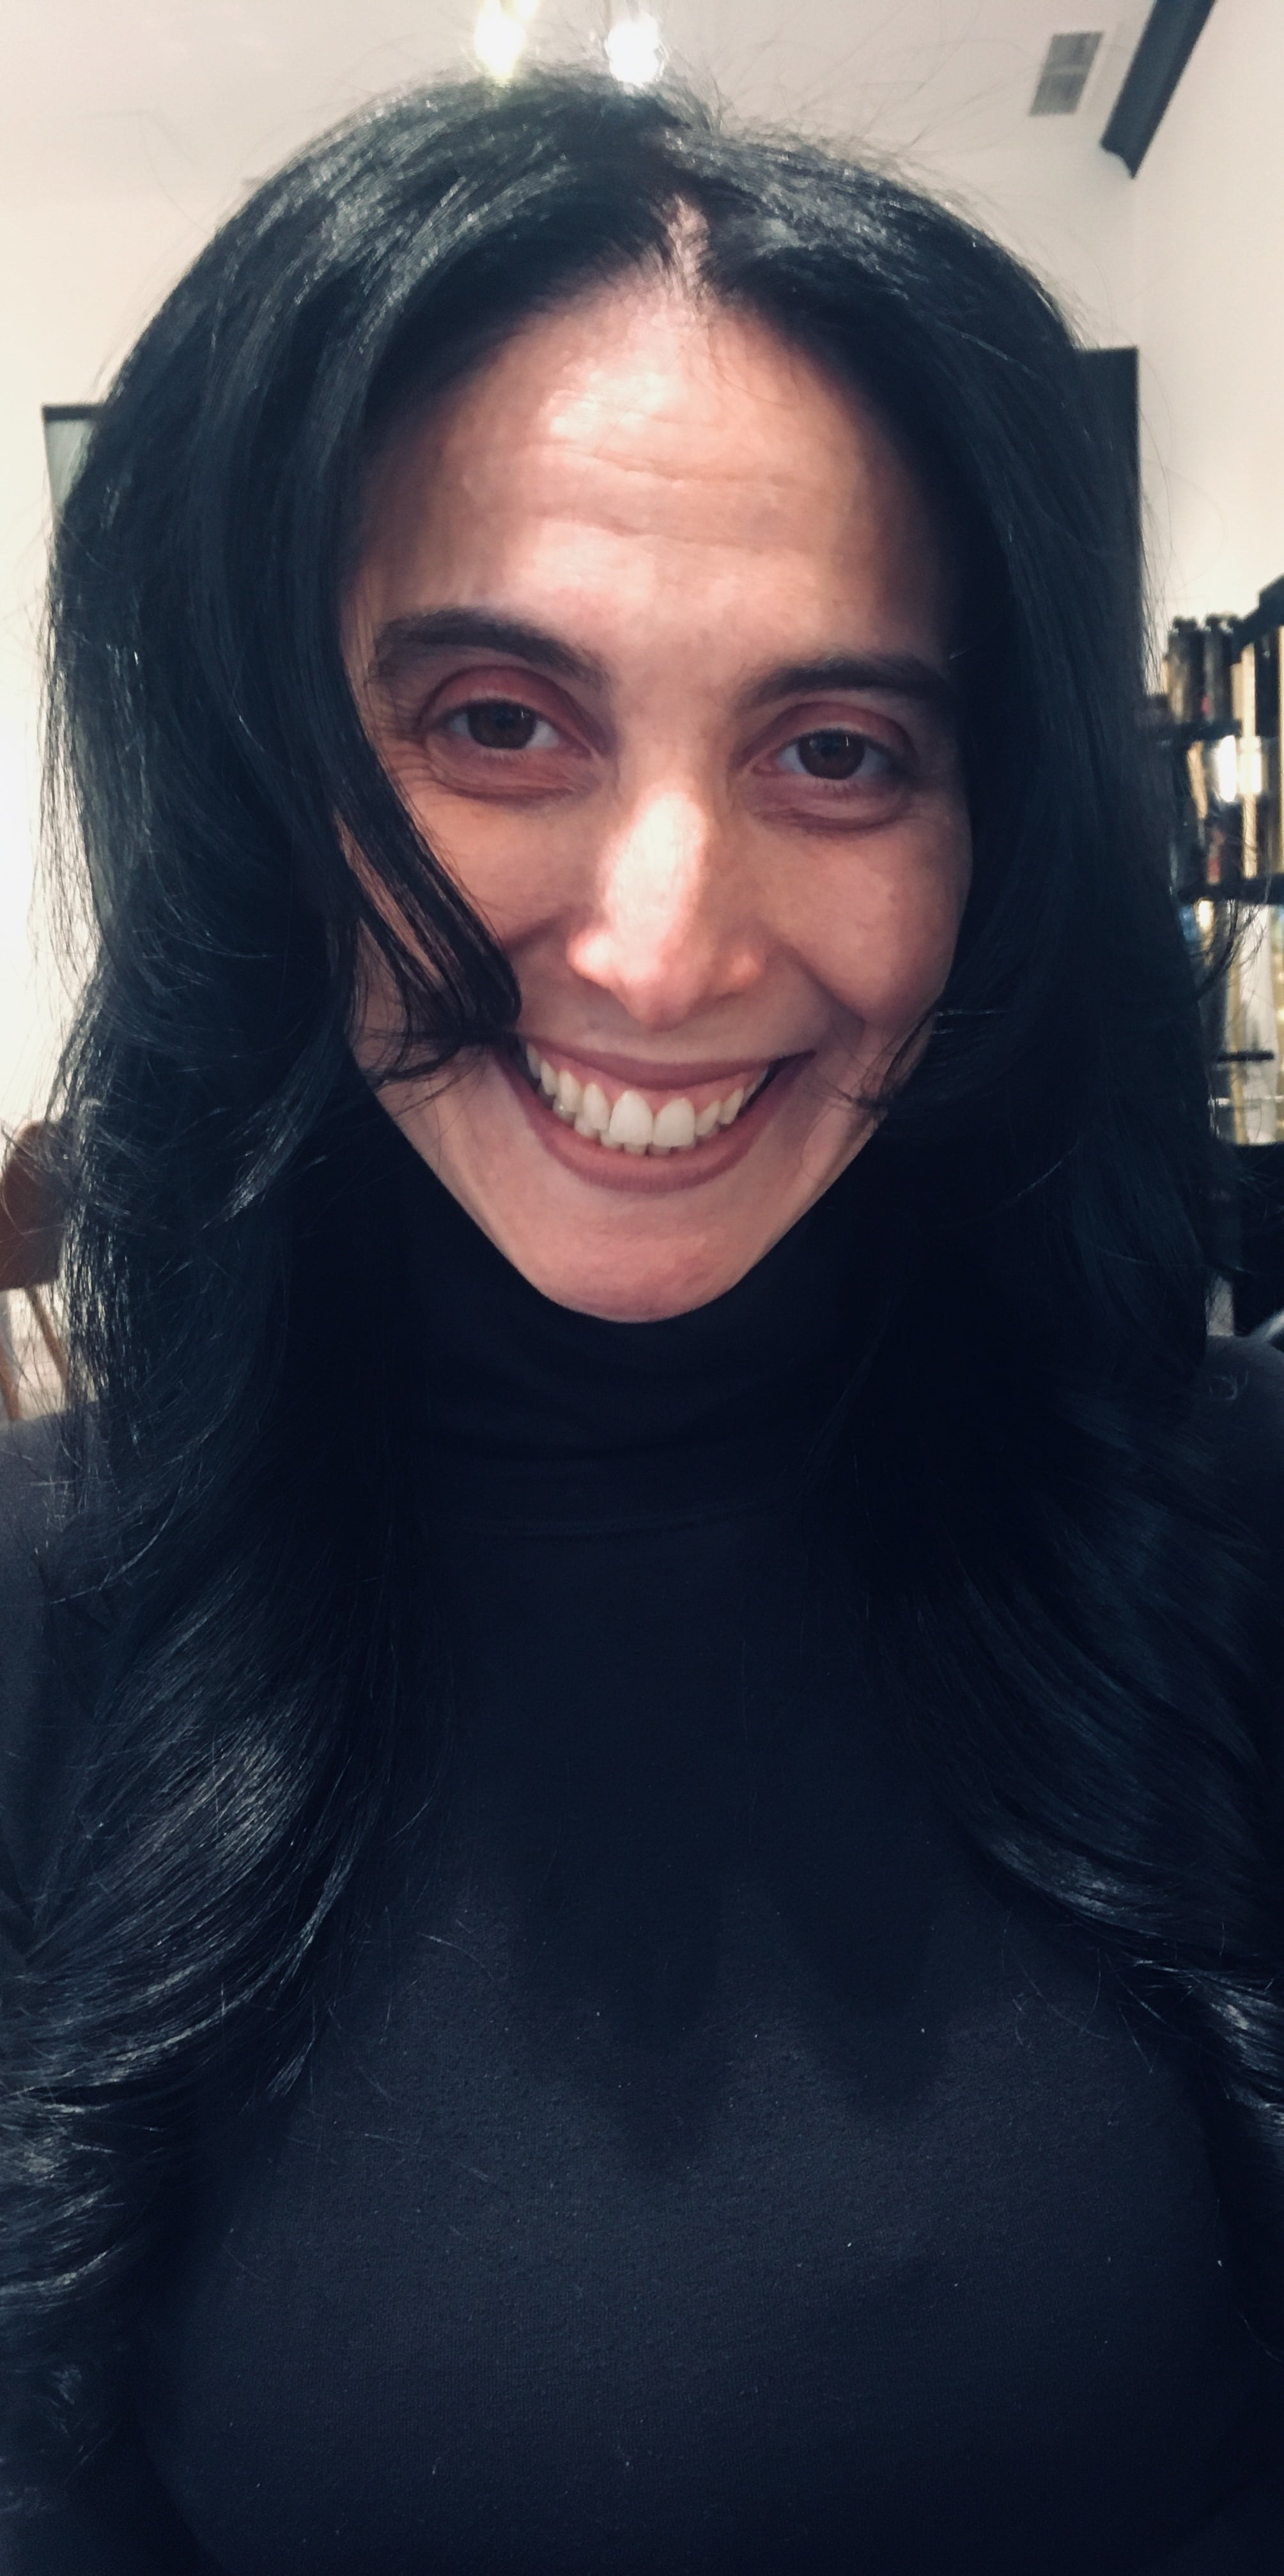 Head shot of Carolyn Cannistraro wearing black turtleneck smiling for camera